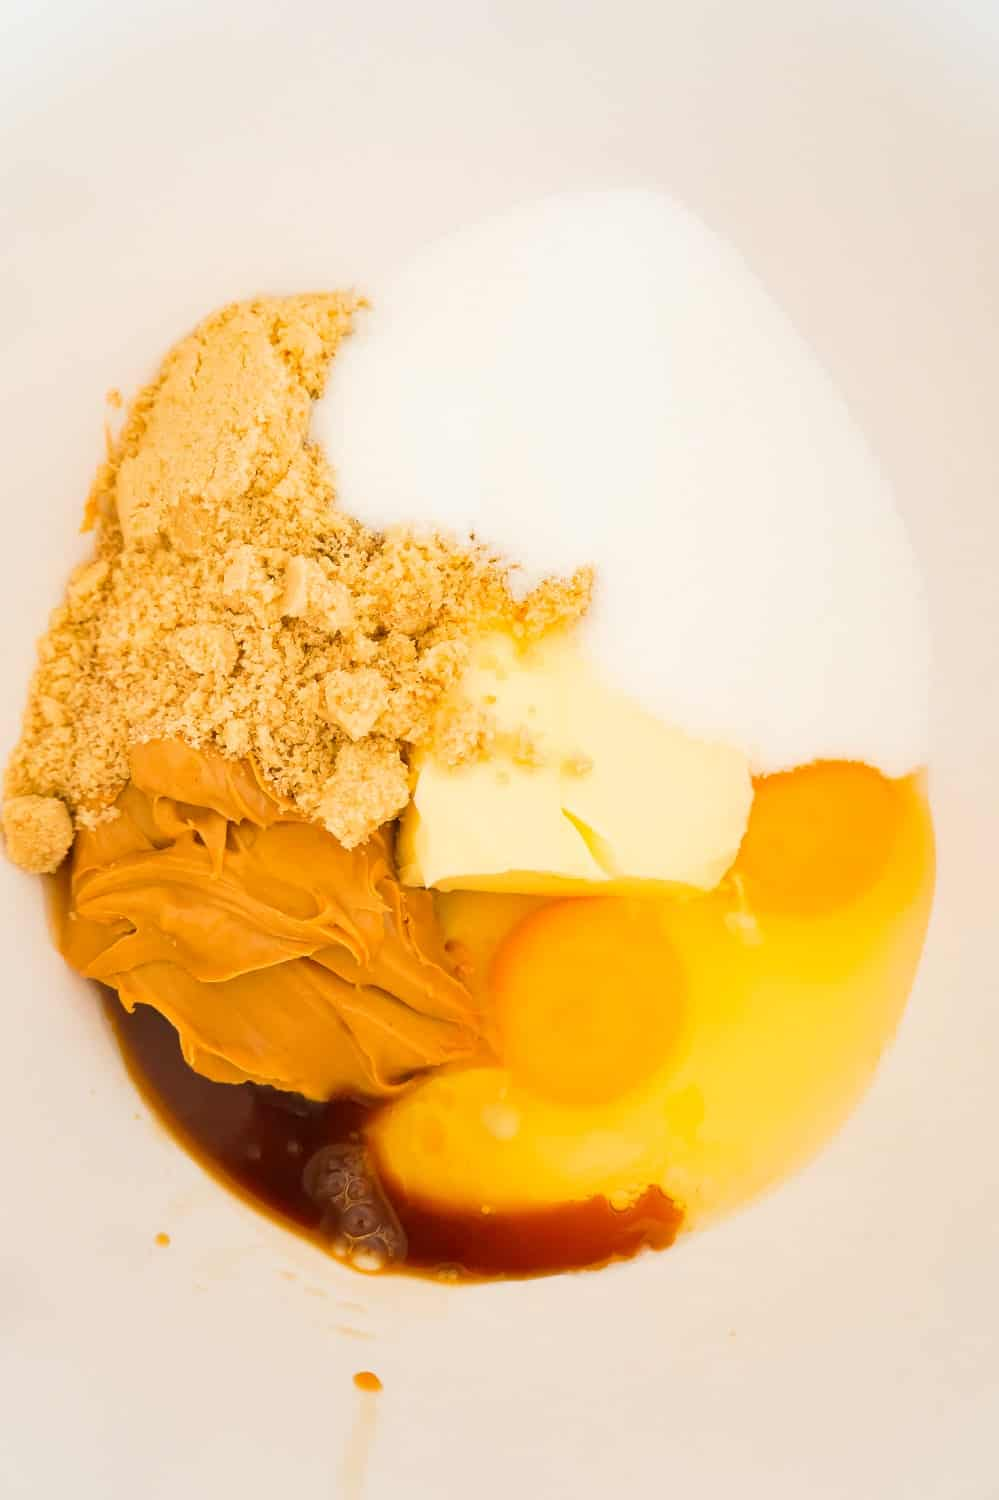 eggs, peanut butter sugar, brown sugar and vanilla extract in a mixing bowl